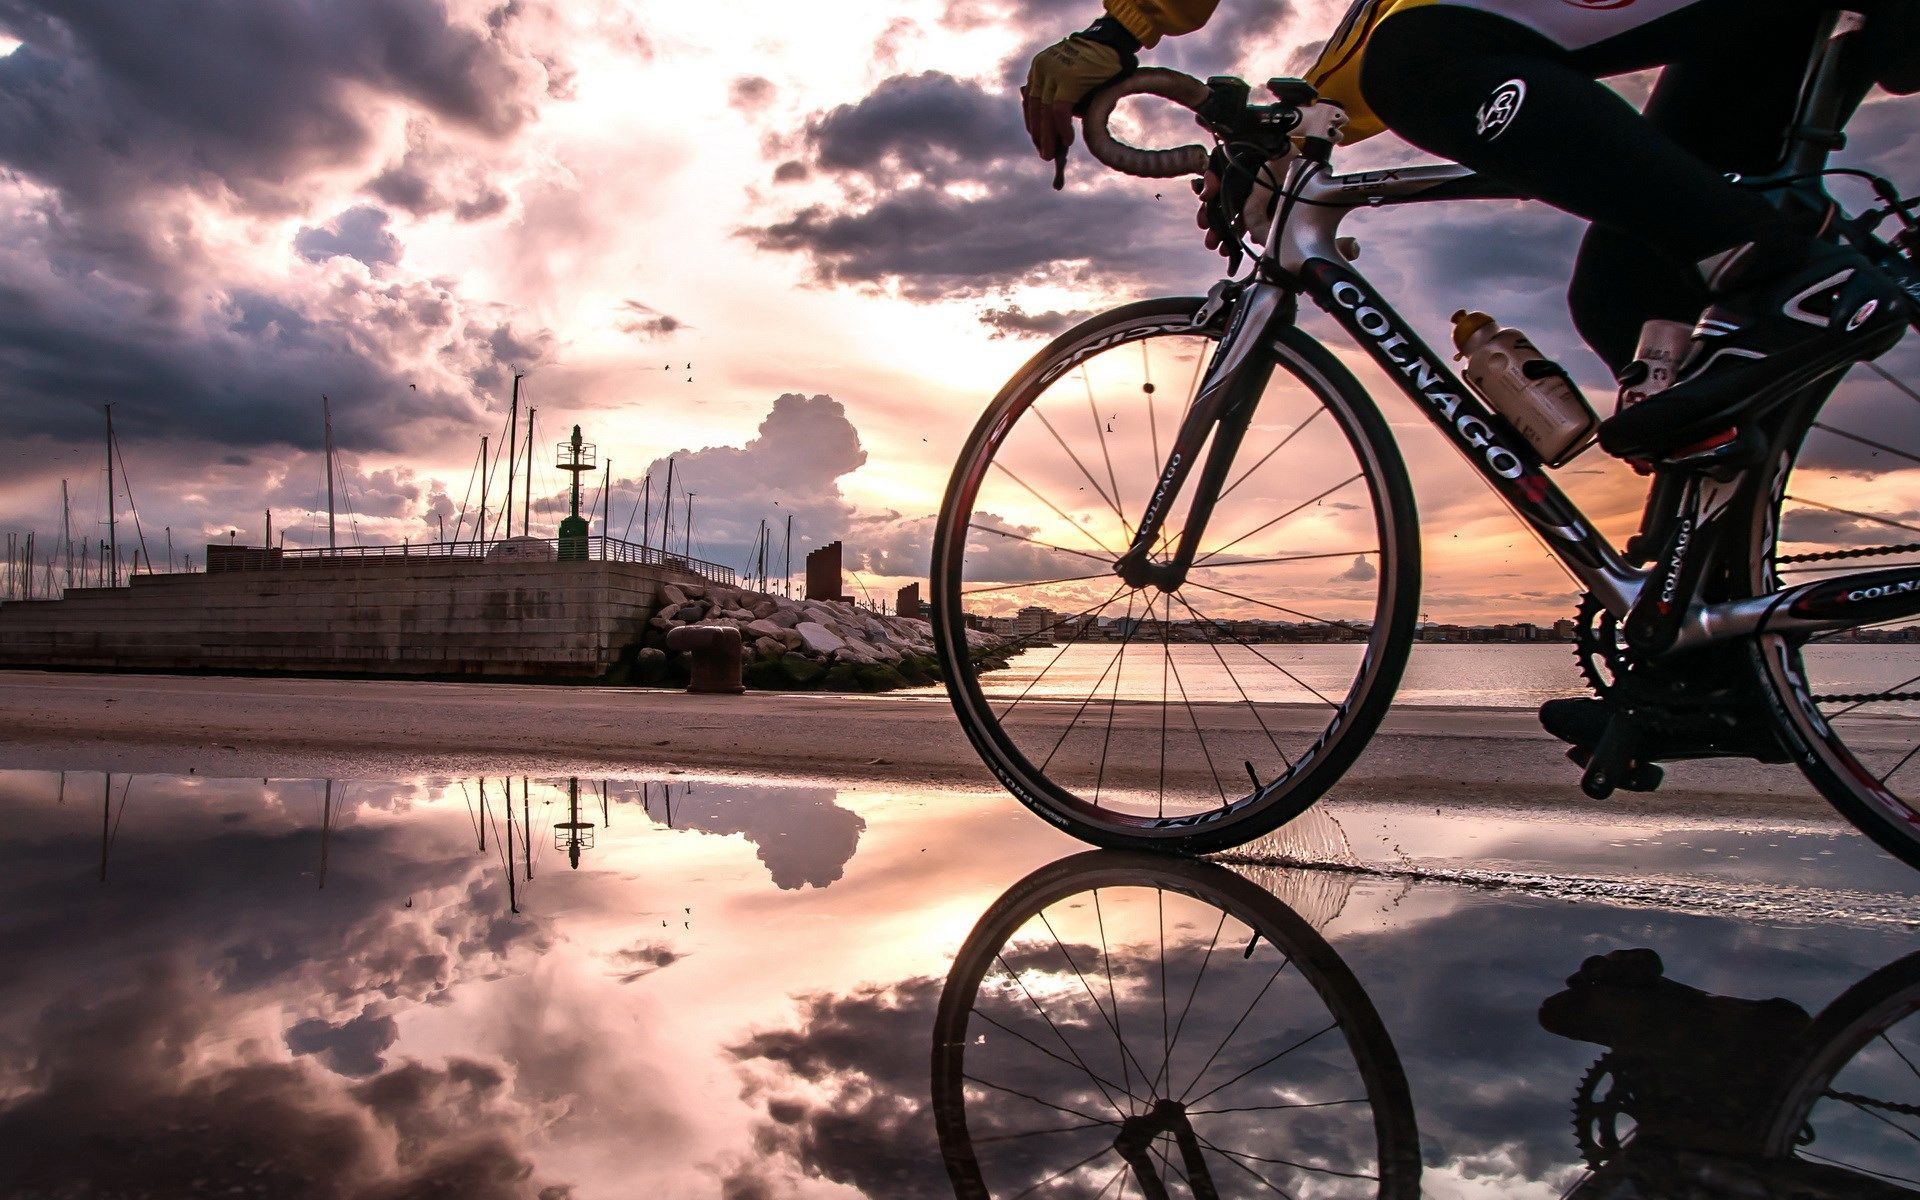 1670191 Bicycle Category Free High Resolution Wallpaper Bicycle